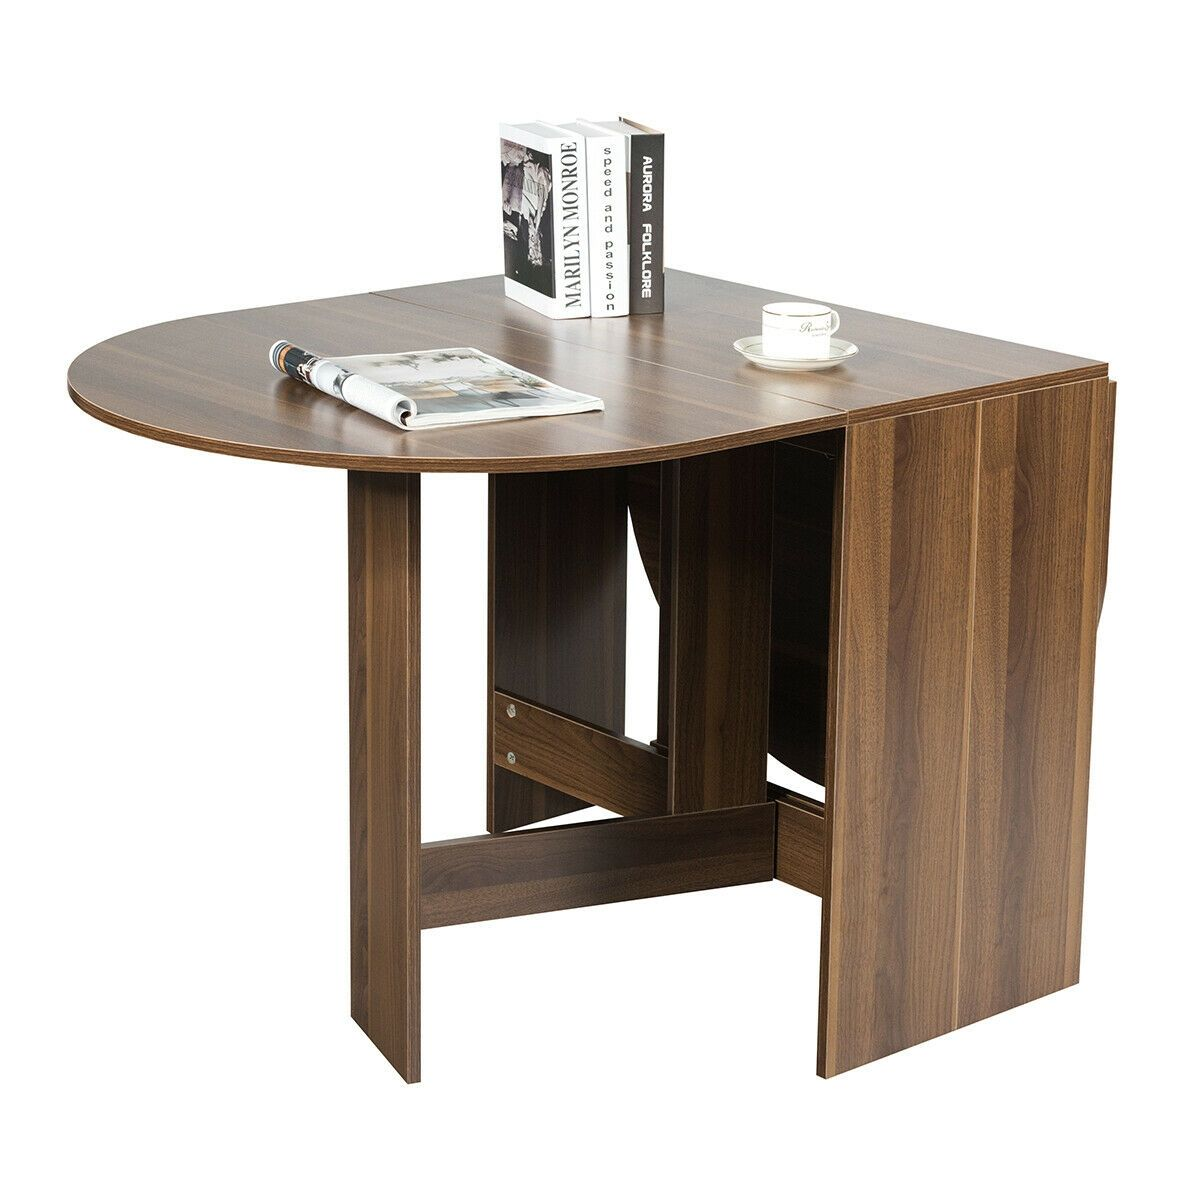 Folding Drop Leaf Dining Table Console Table Dining Table Price